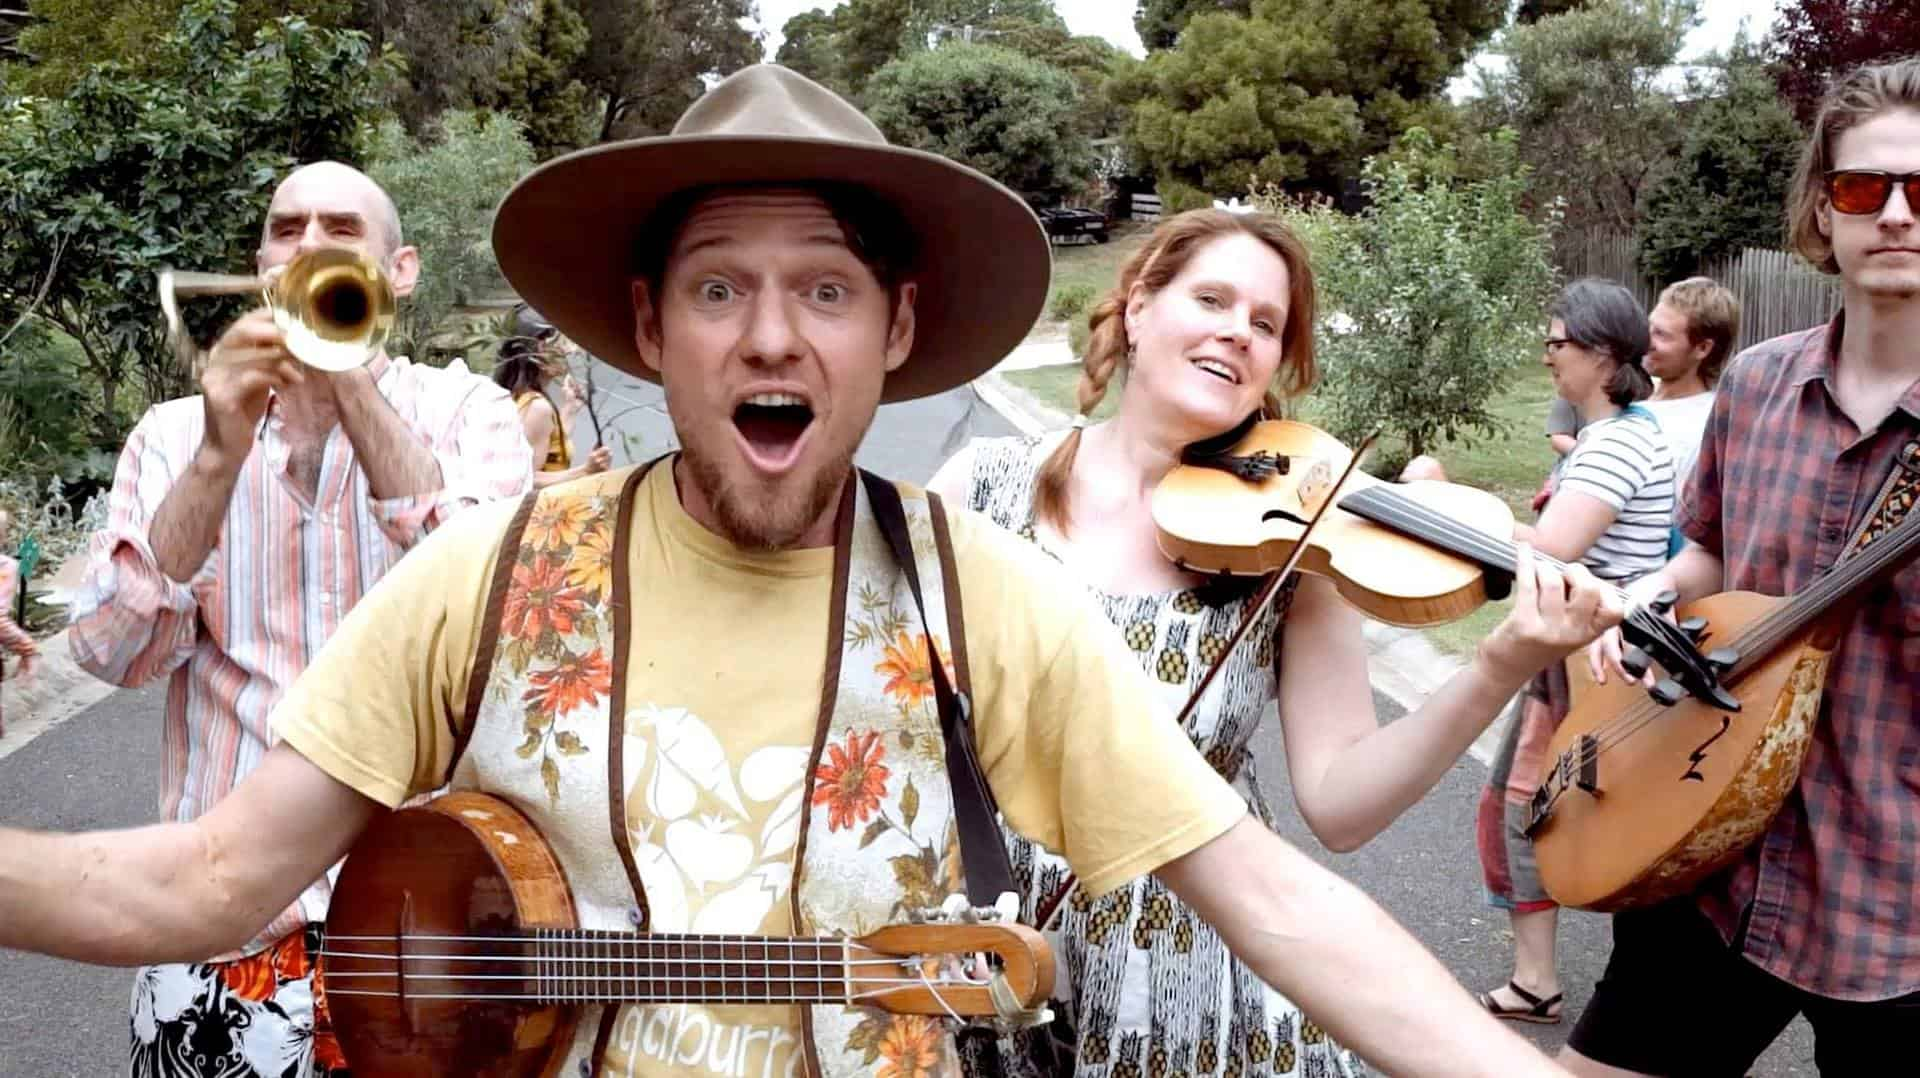 Conversation about permaculture music with Charlie Mgee